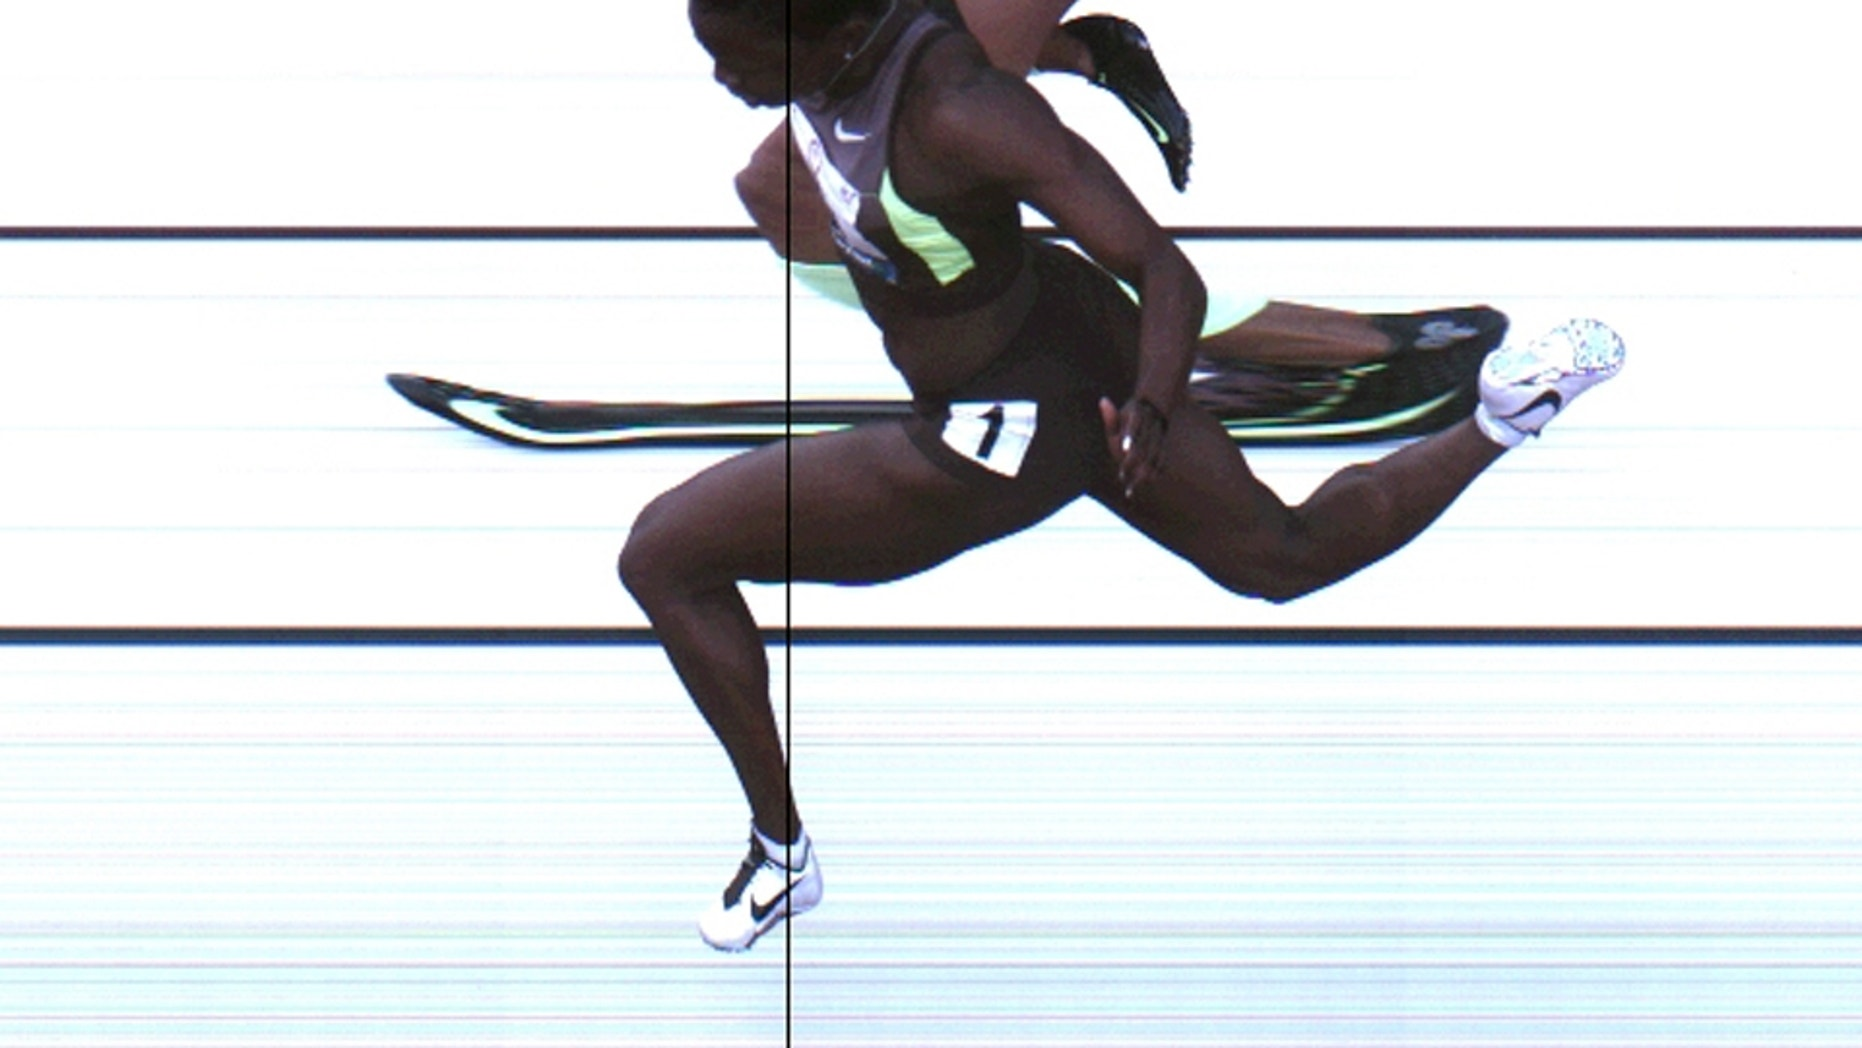 June 23, 2012: Third-place finish of the women's 100-meter final from a photo-finish camera, shot at 3,000-frames-per-second, during the U.S. Olympic Track and Field Trials in Eugene, Ore.